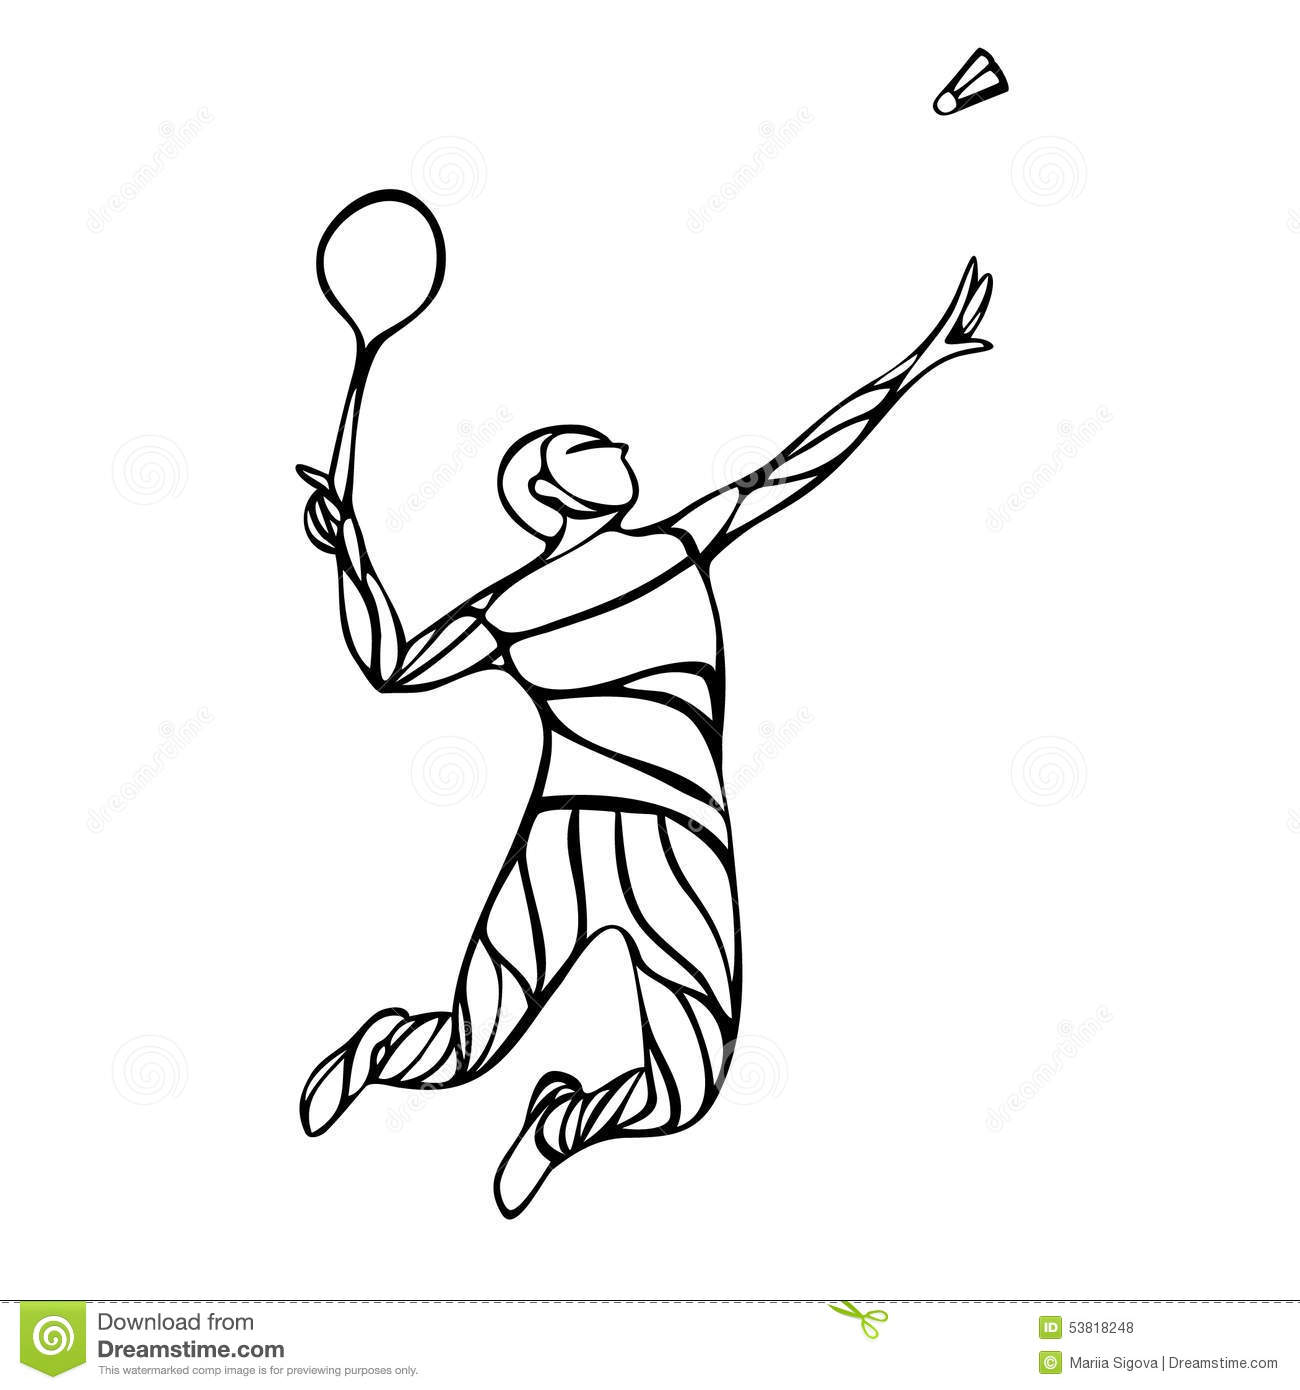 Creative Silhouette Of Abstract Badminton Player Stock ... Badminton Player Png